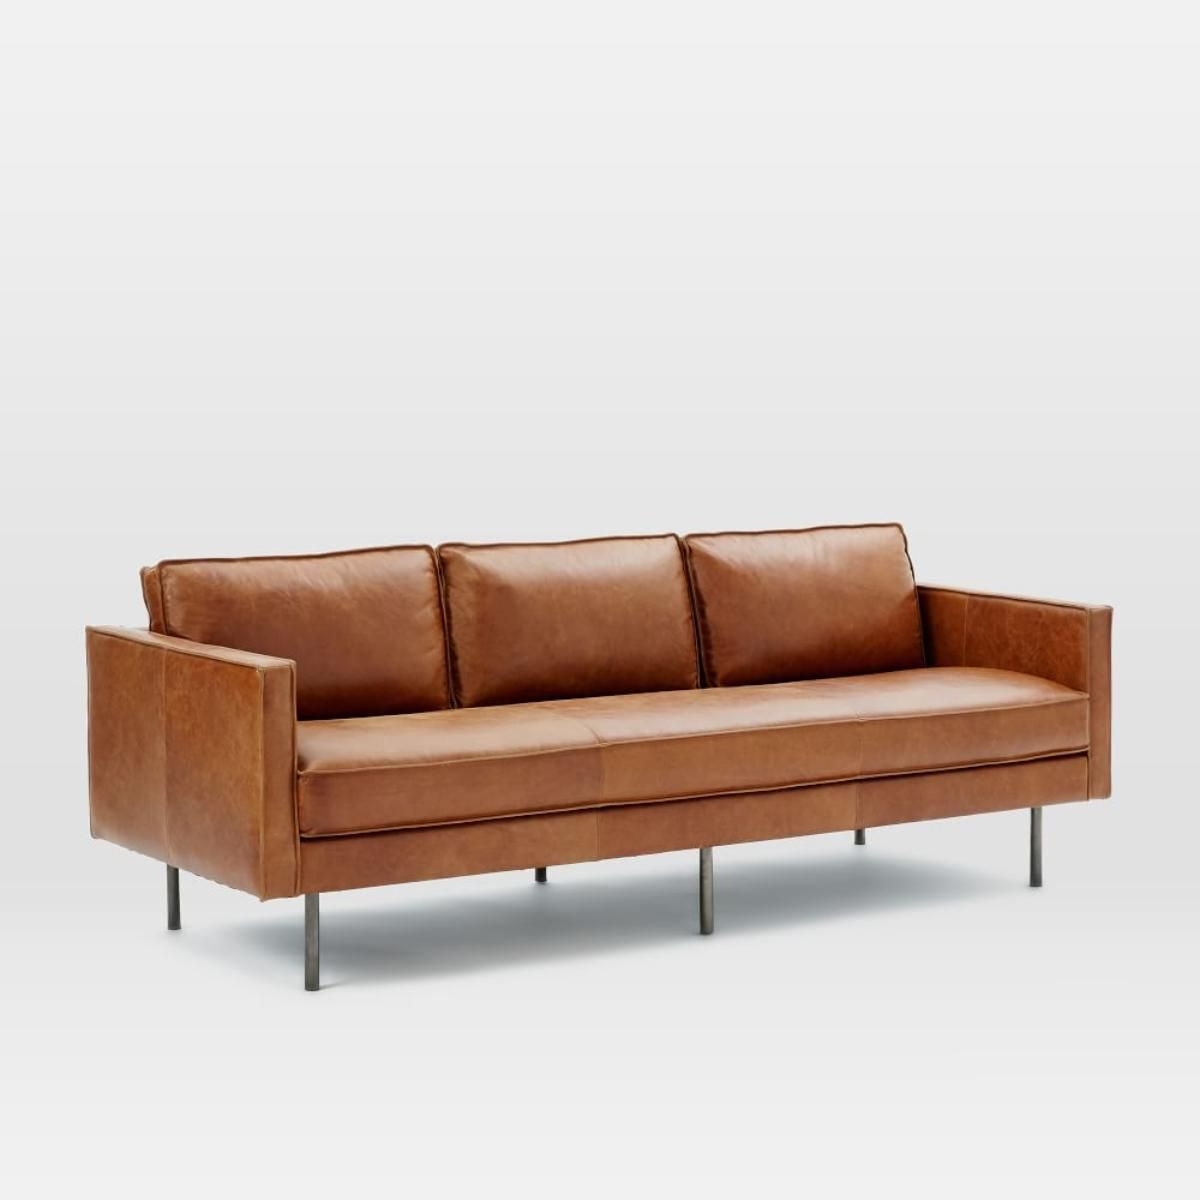 Image Result For Nick Scali Brown Leather Sofa Bed